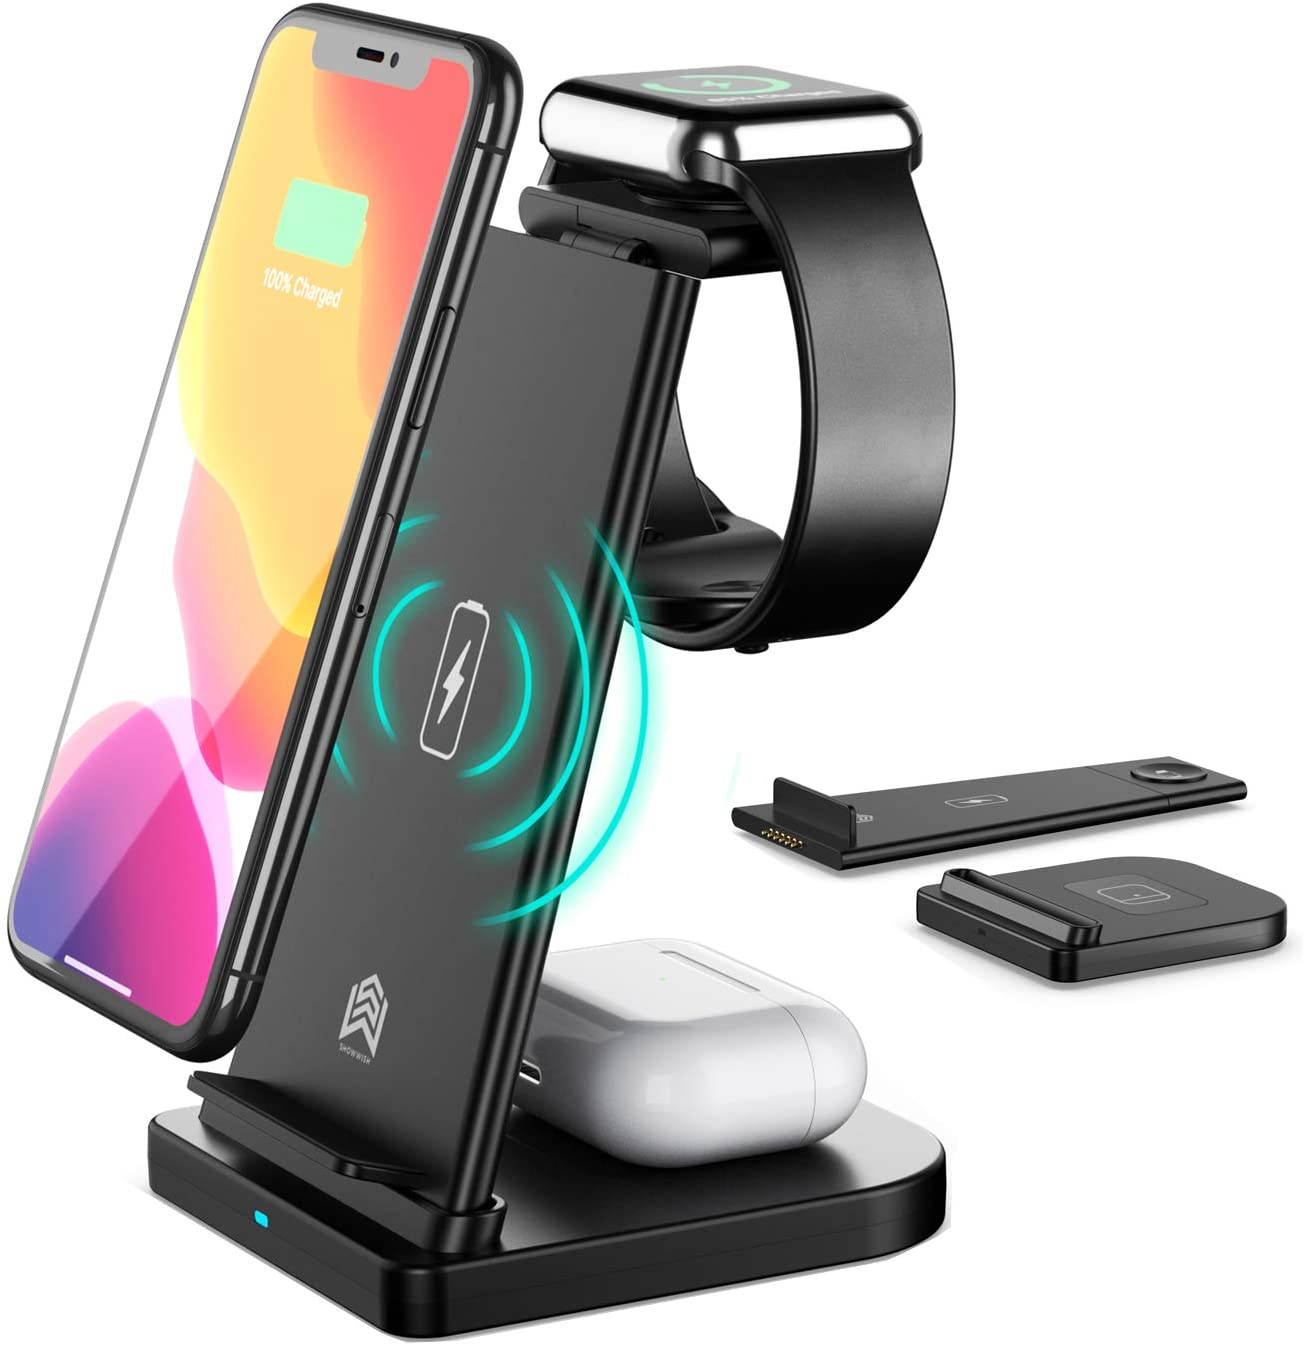 3 in 1 Qi-Certified Fast Wireless Charging Station Charger